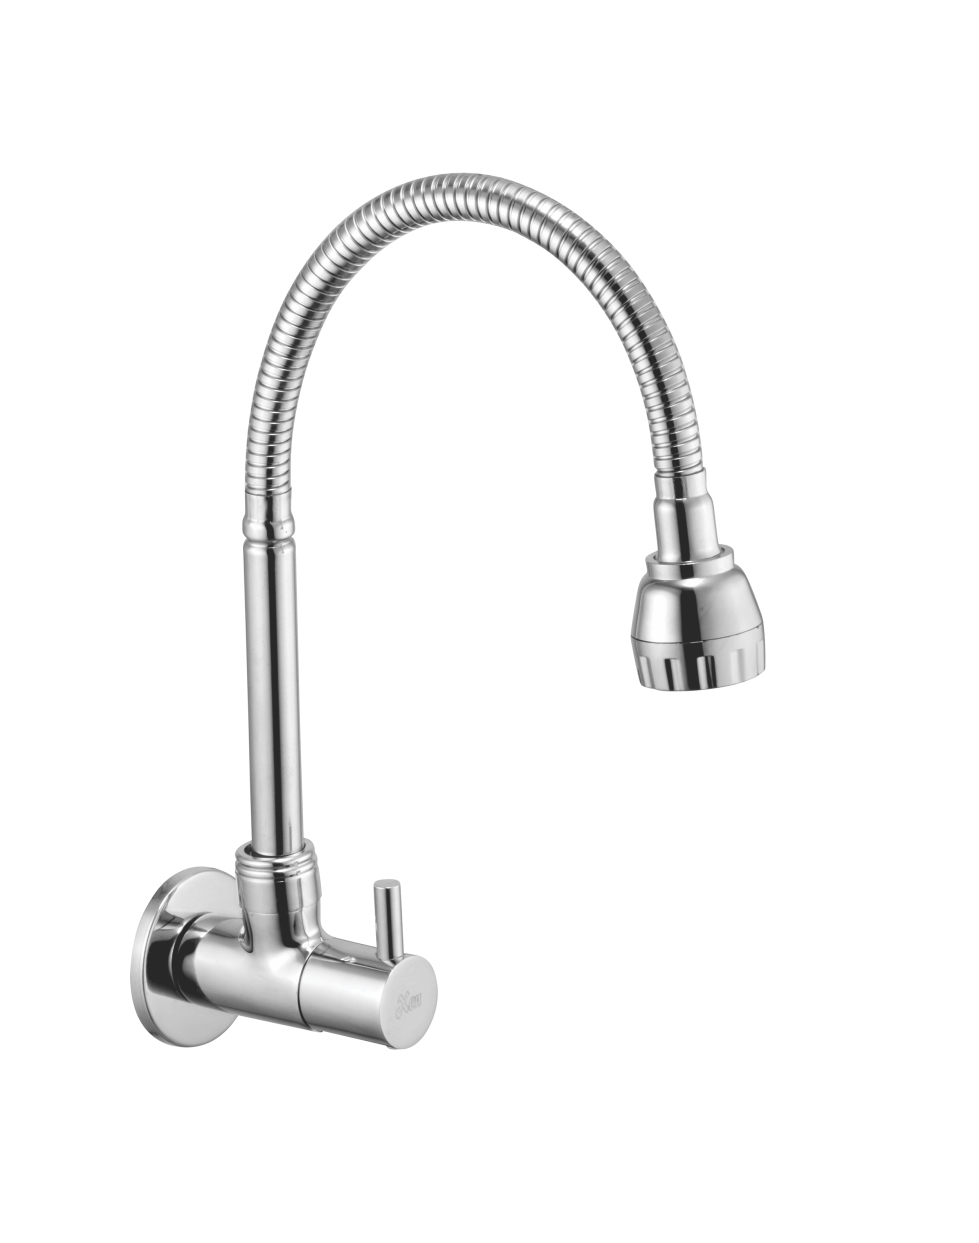 Sink Cock Harmony With Twin Flow Spout